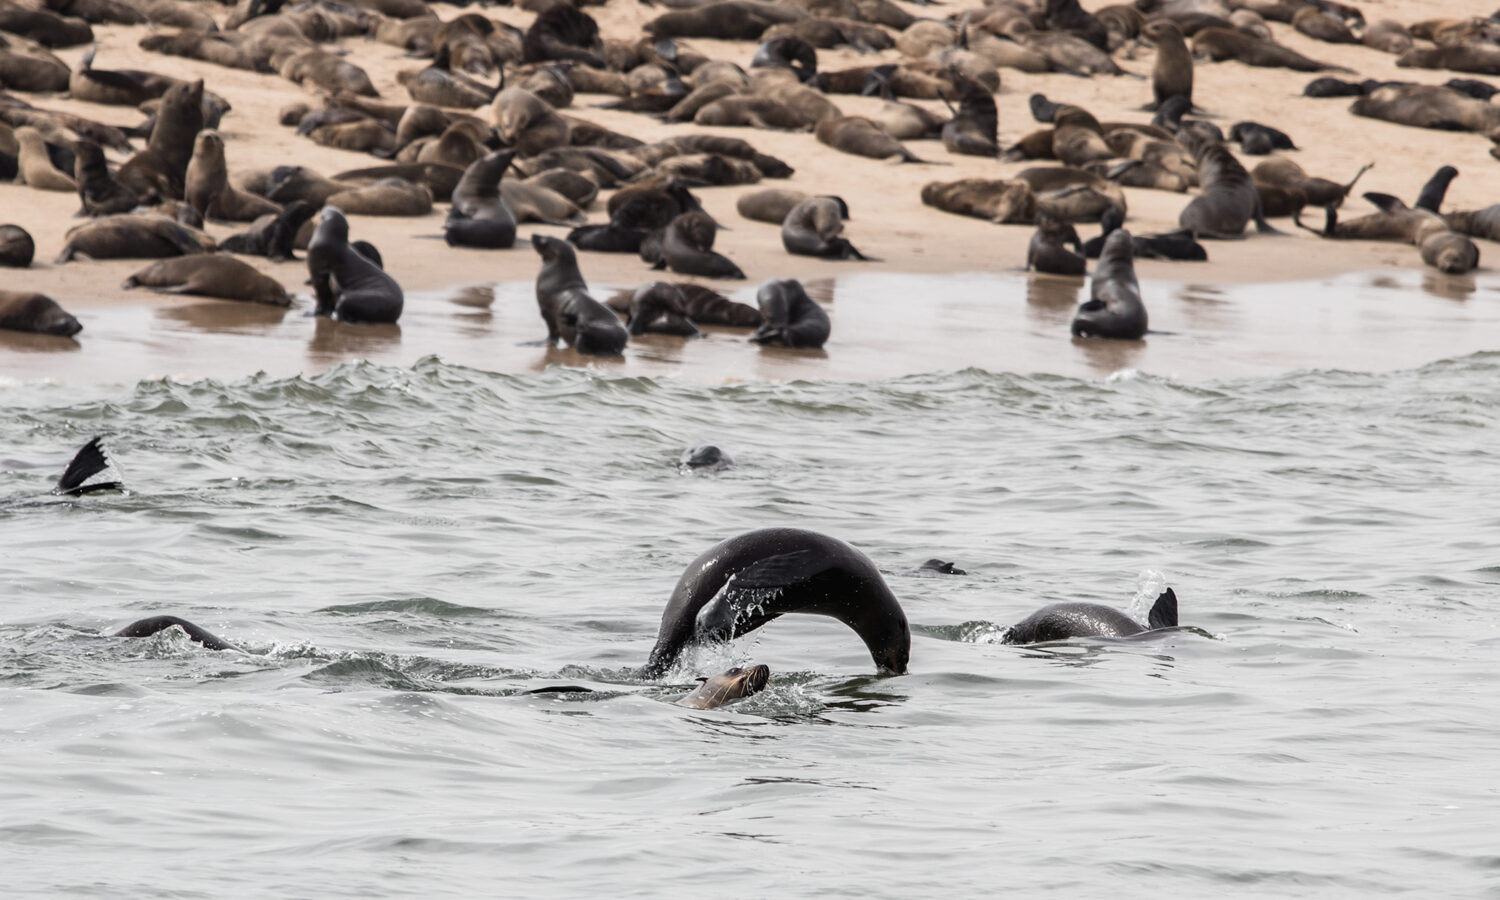 Cape Fur seals near Pelican Point during a dolphin and seal catamaran cruise in Namibia